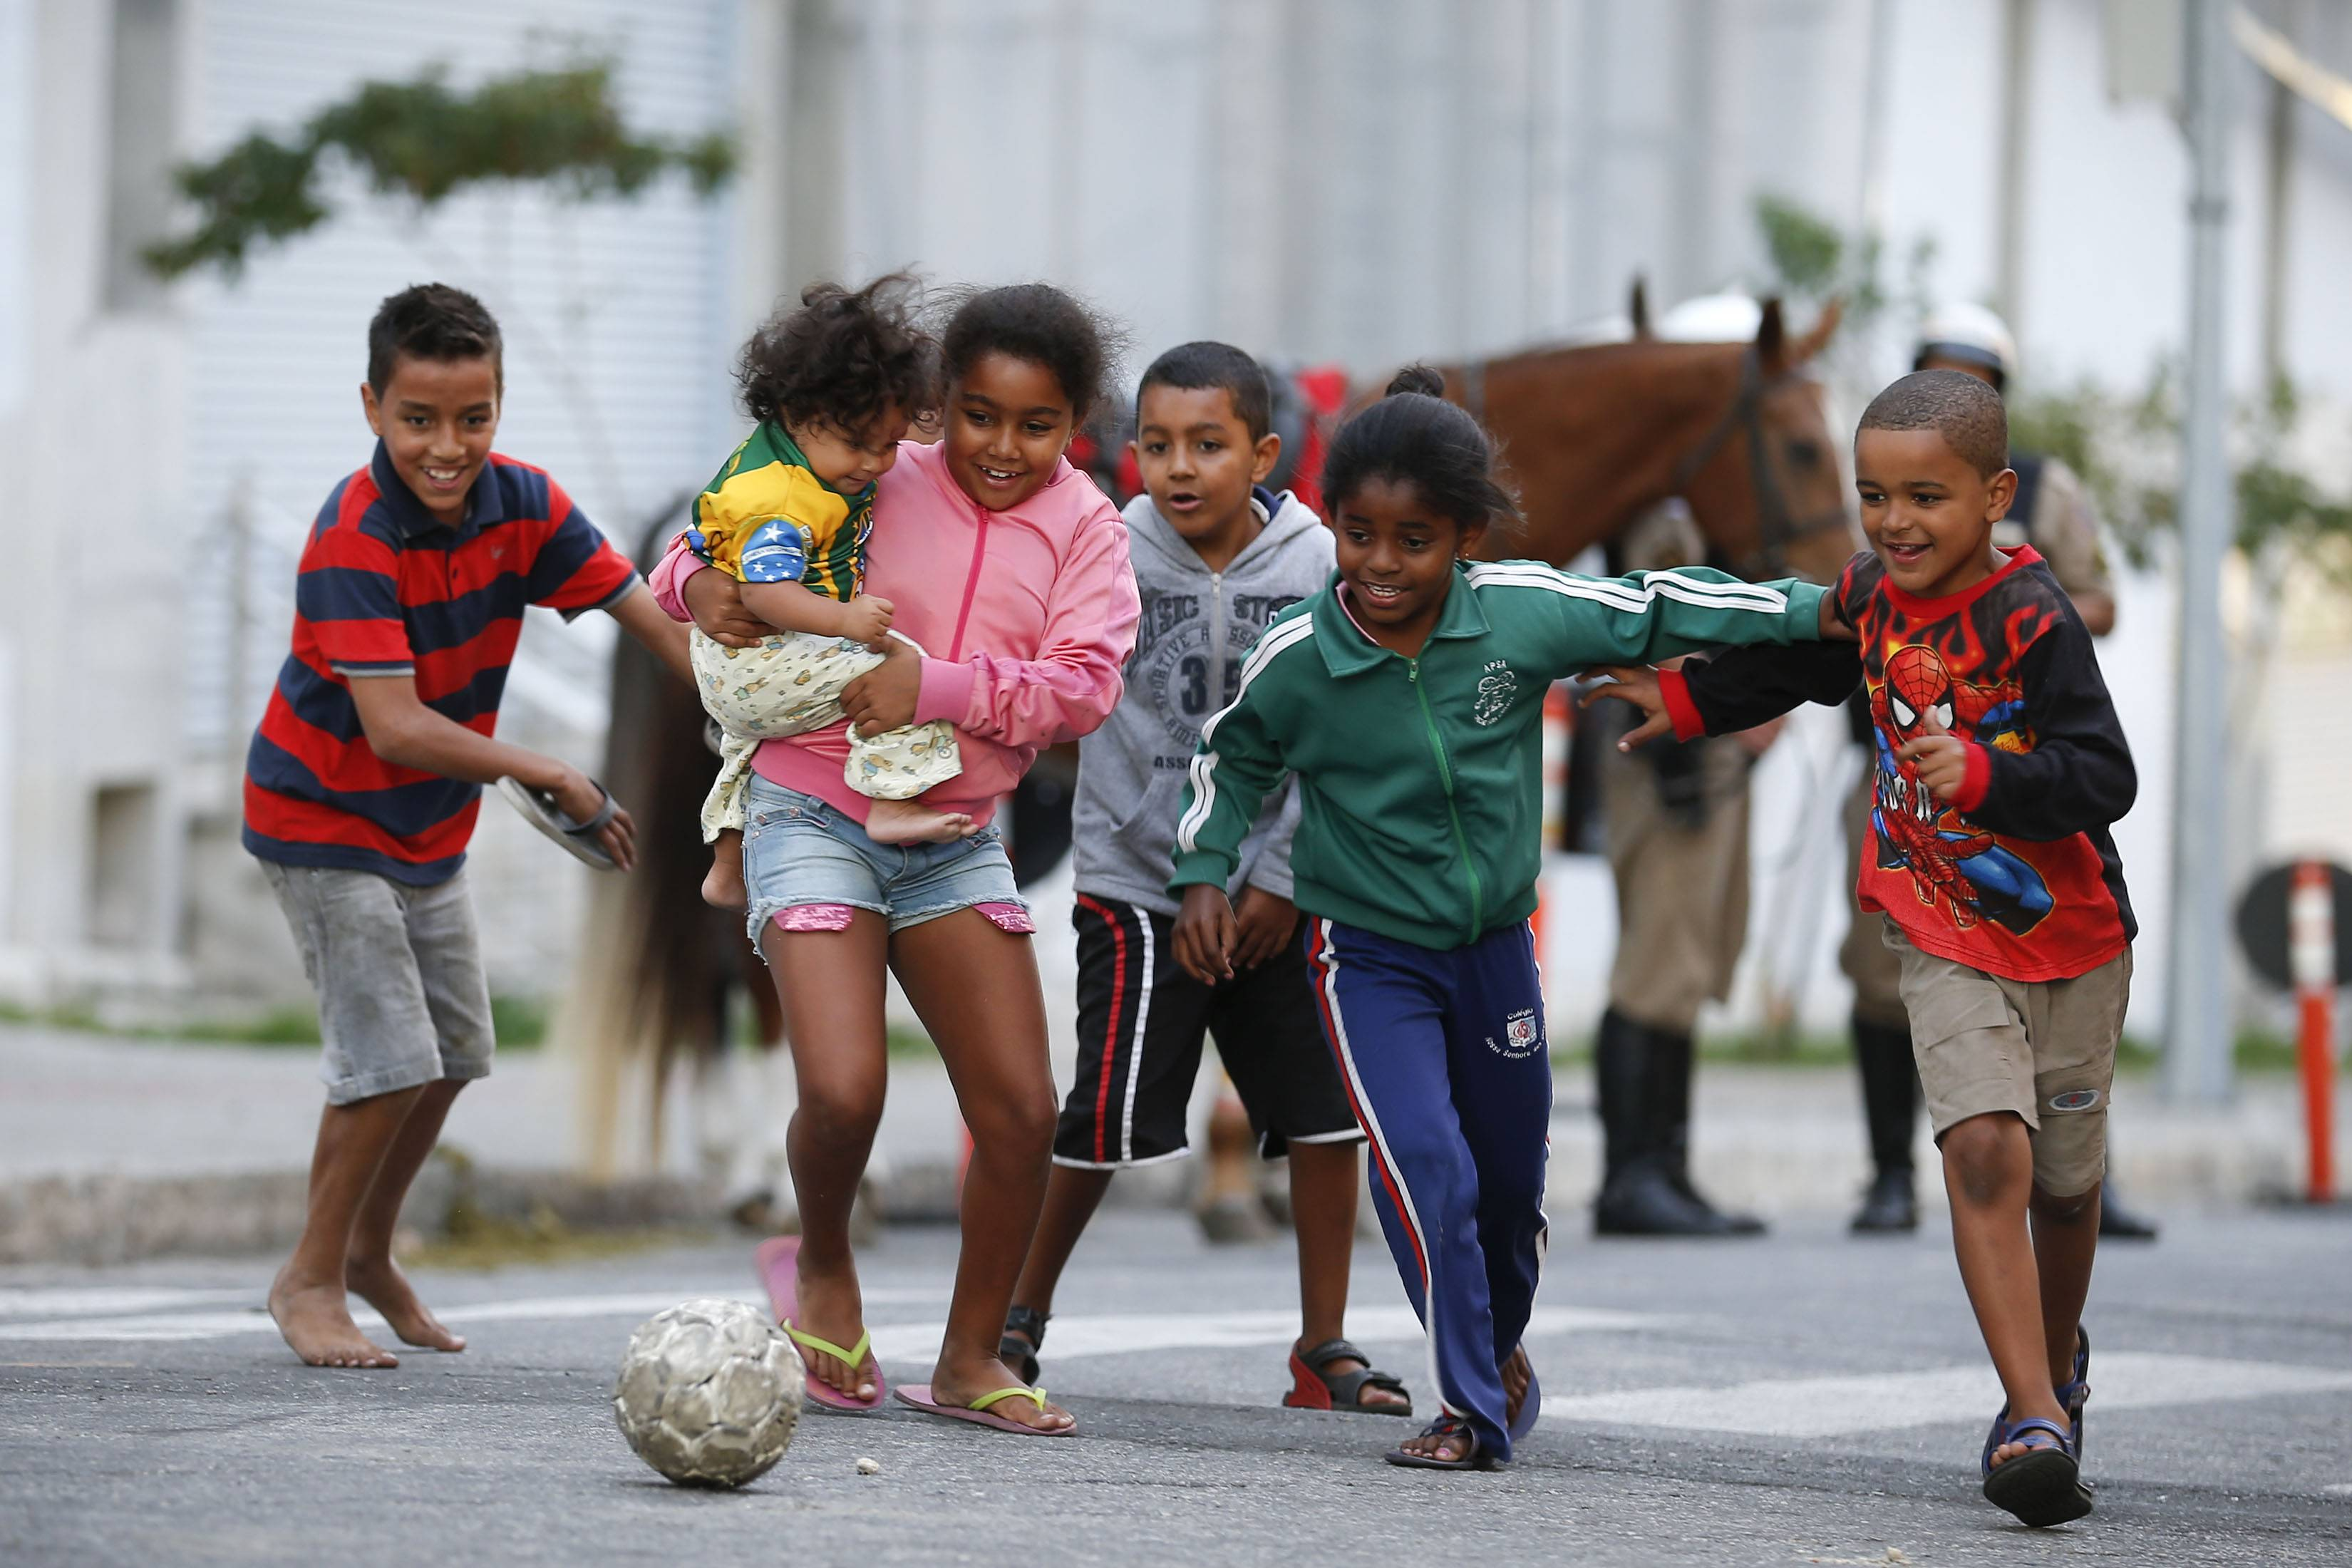 Children kick around a soccer ball Wednesday outside the Independencia Stadium in Belo Horizonte, Brazil. The 2014 World Cup is set to begin Thursday, with Brazil and Croatia competing in the opening match in Sao Paulo.